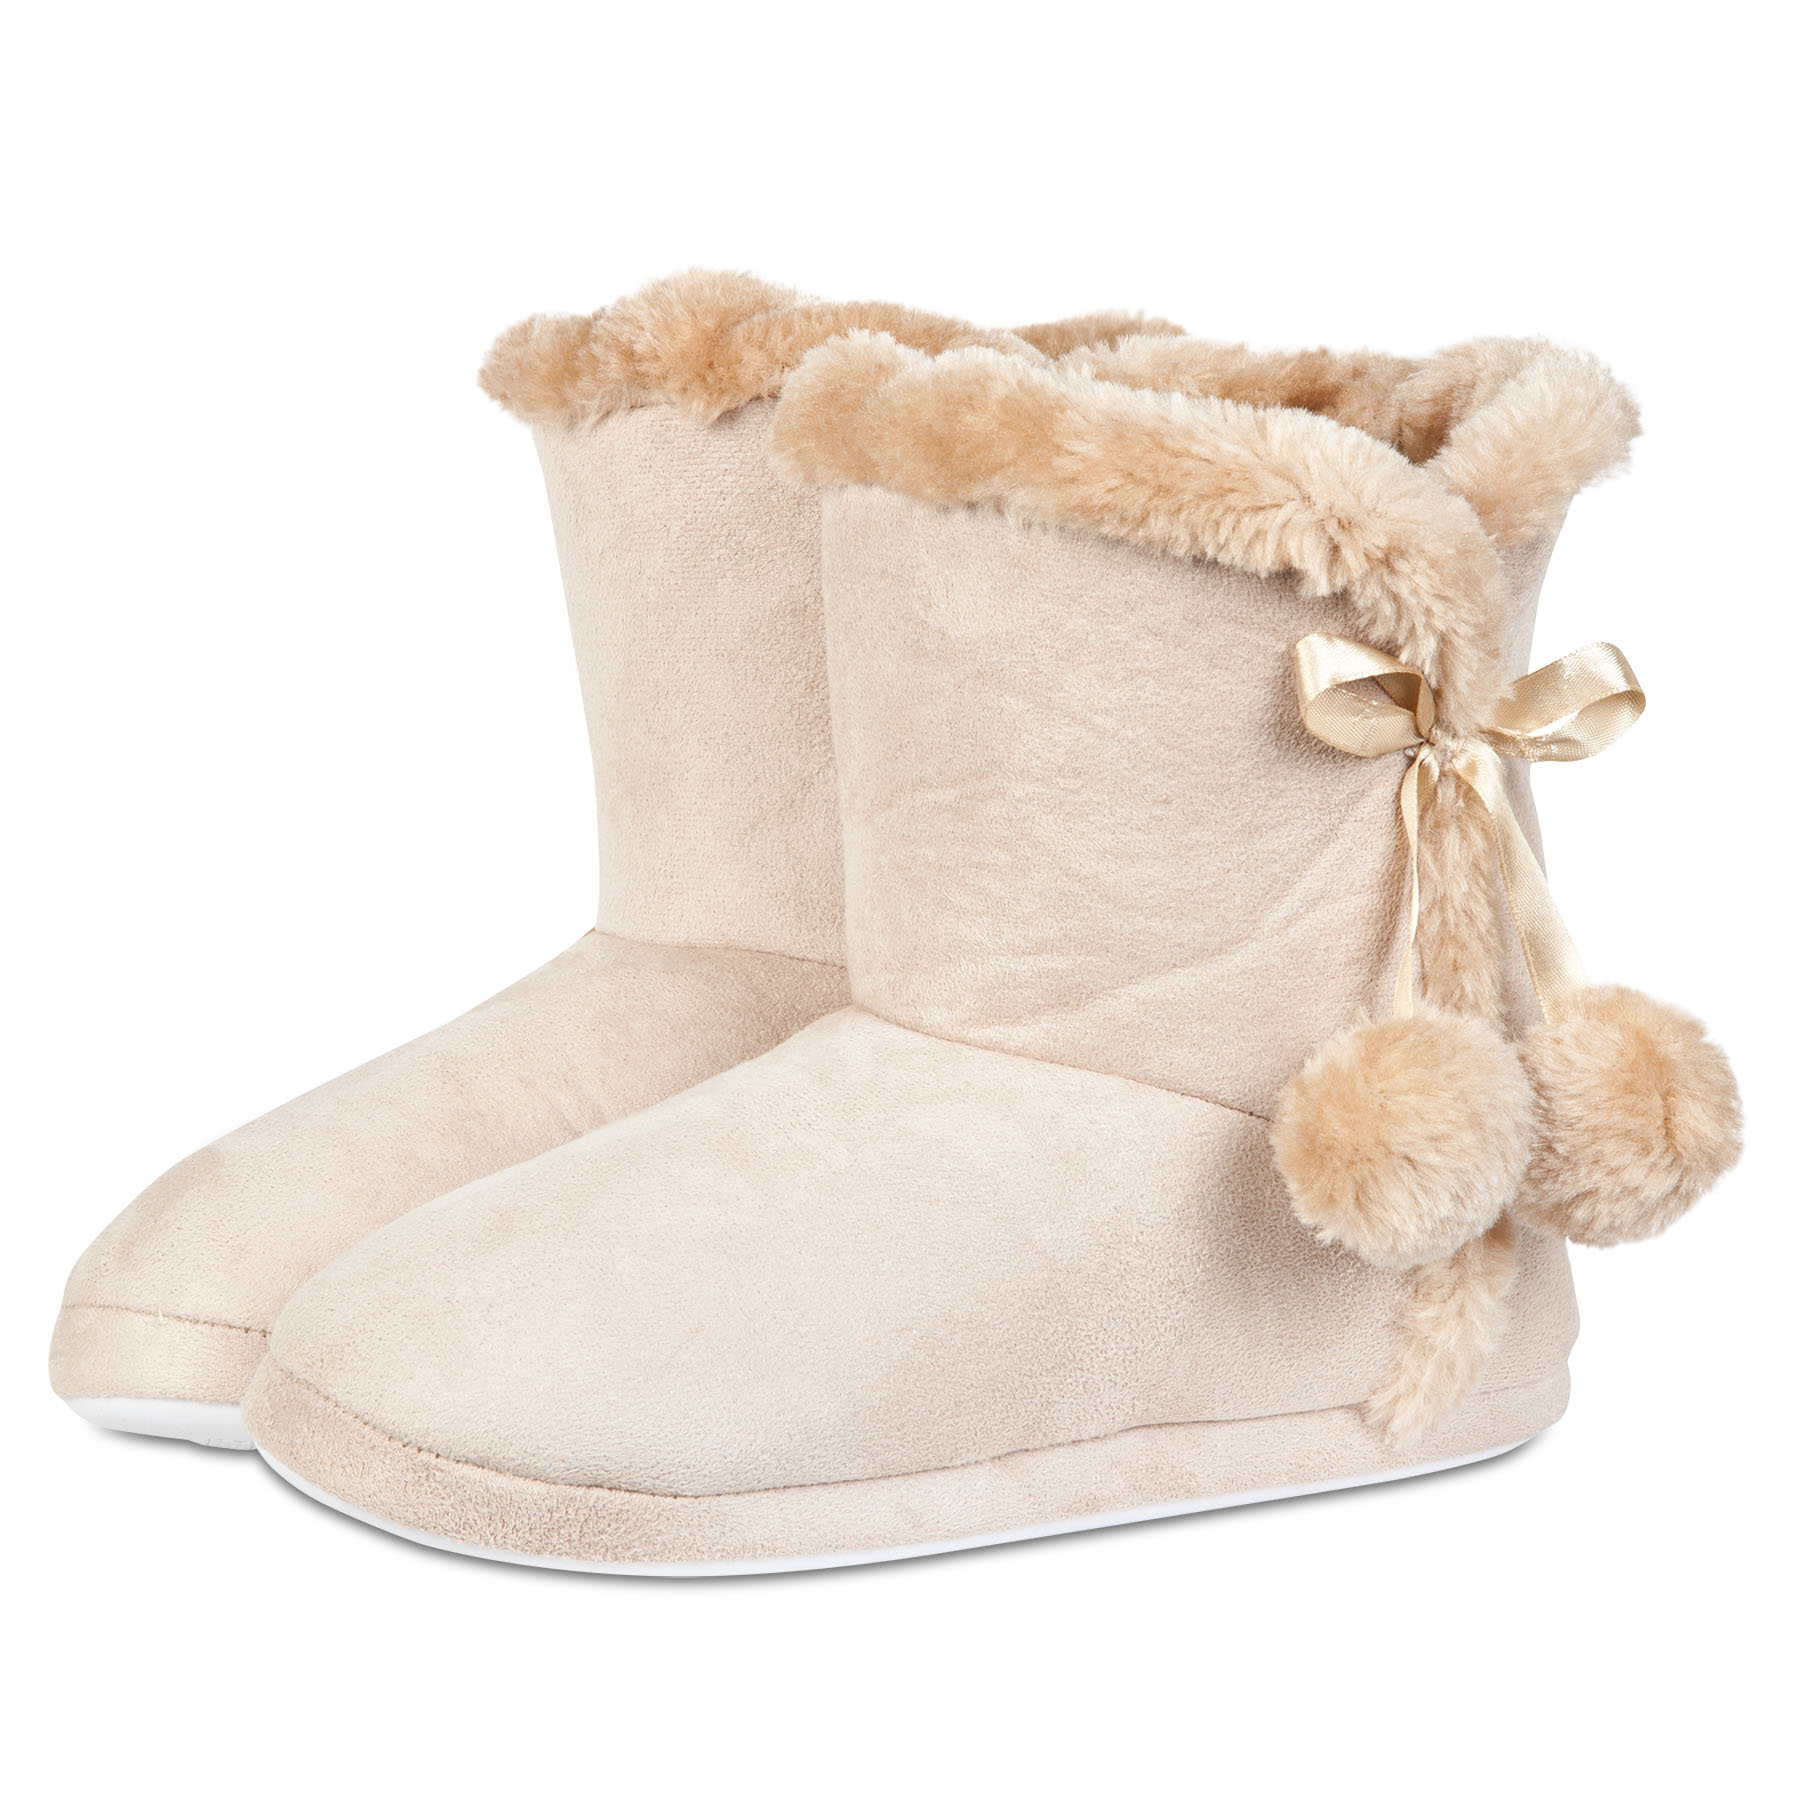 Manchester City Boot Slipper - Tan - Womens